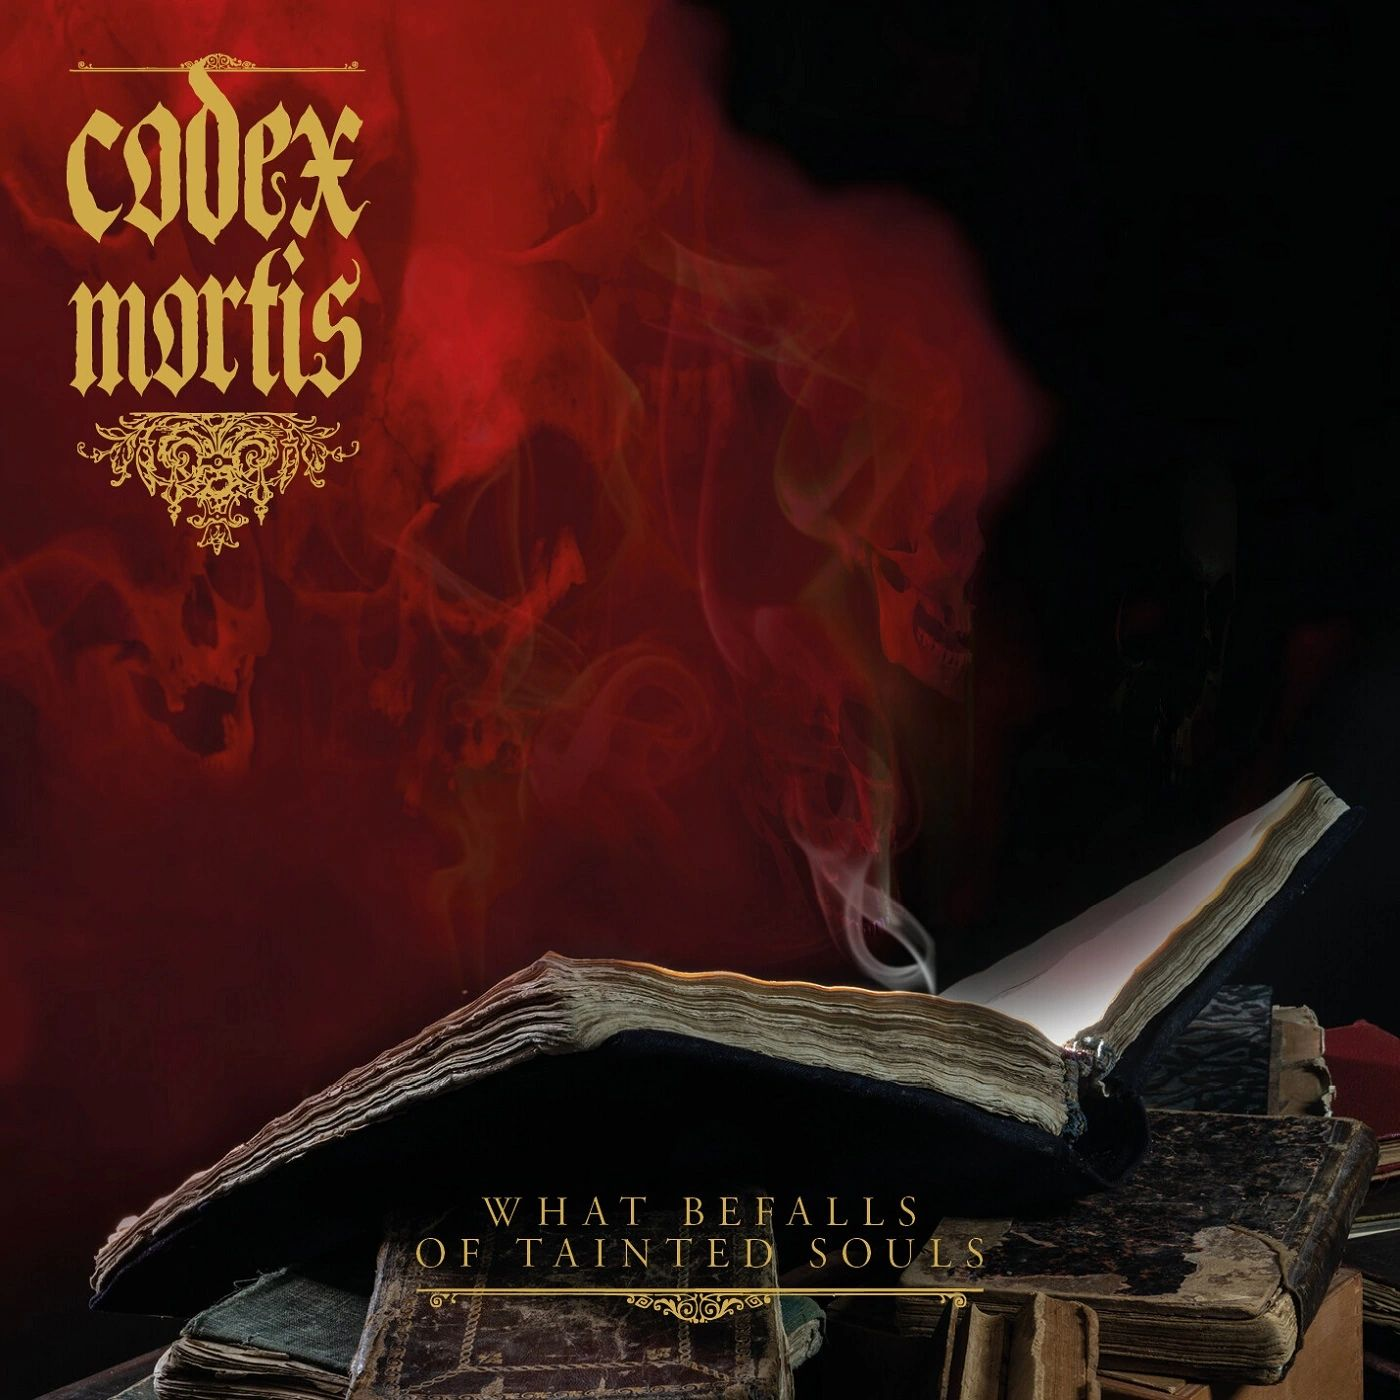 Reviews for Codex Mortis - What Befalls of Tainted Souls